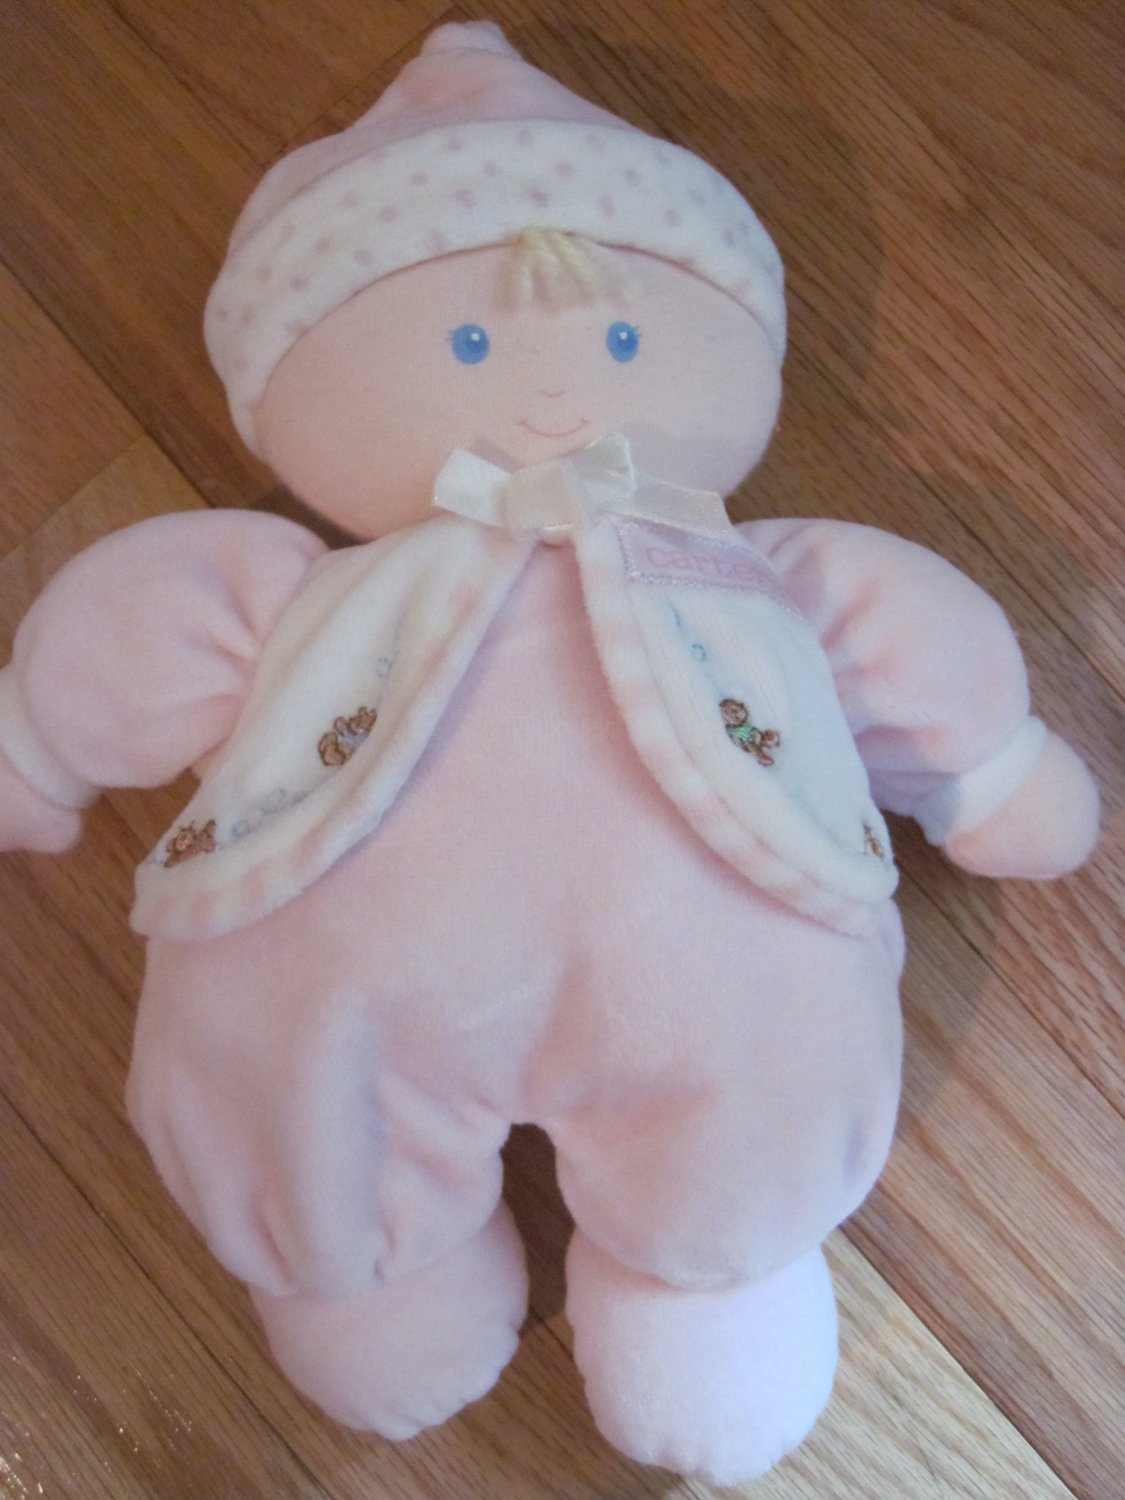 Carters Just One Year Plush Soft Baby Doll Pink & White Velour Pajamas with Bears Polka Dots 74465